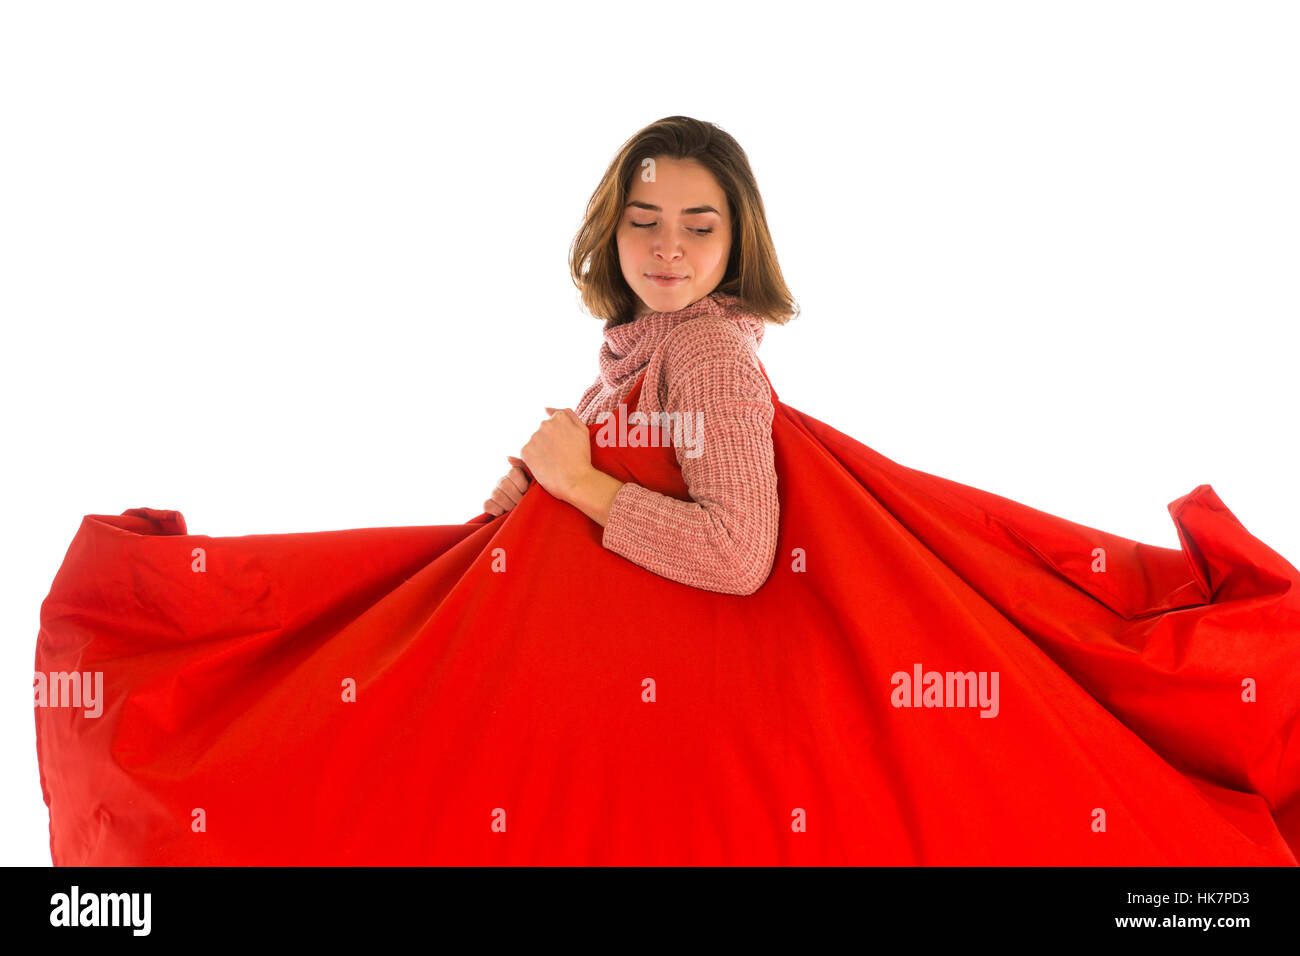 Young woman holding on her shoulder red rectangular shaped beanbag sofa chair for living room or other room isolated - Stock Image